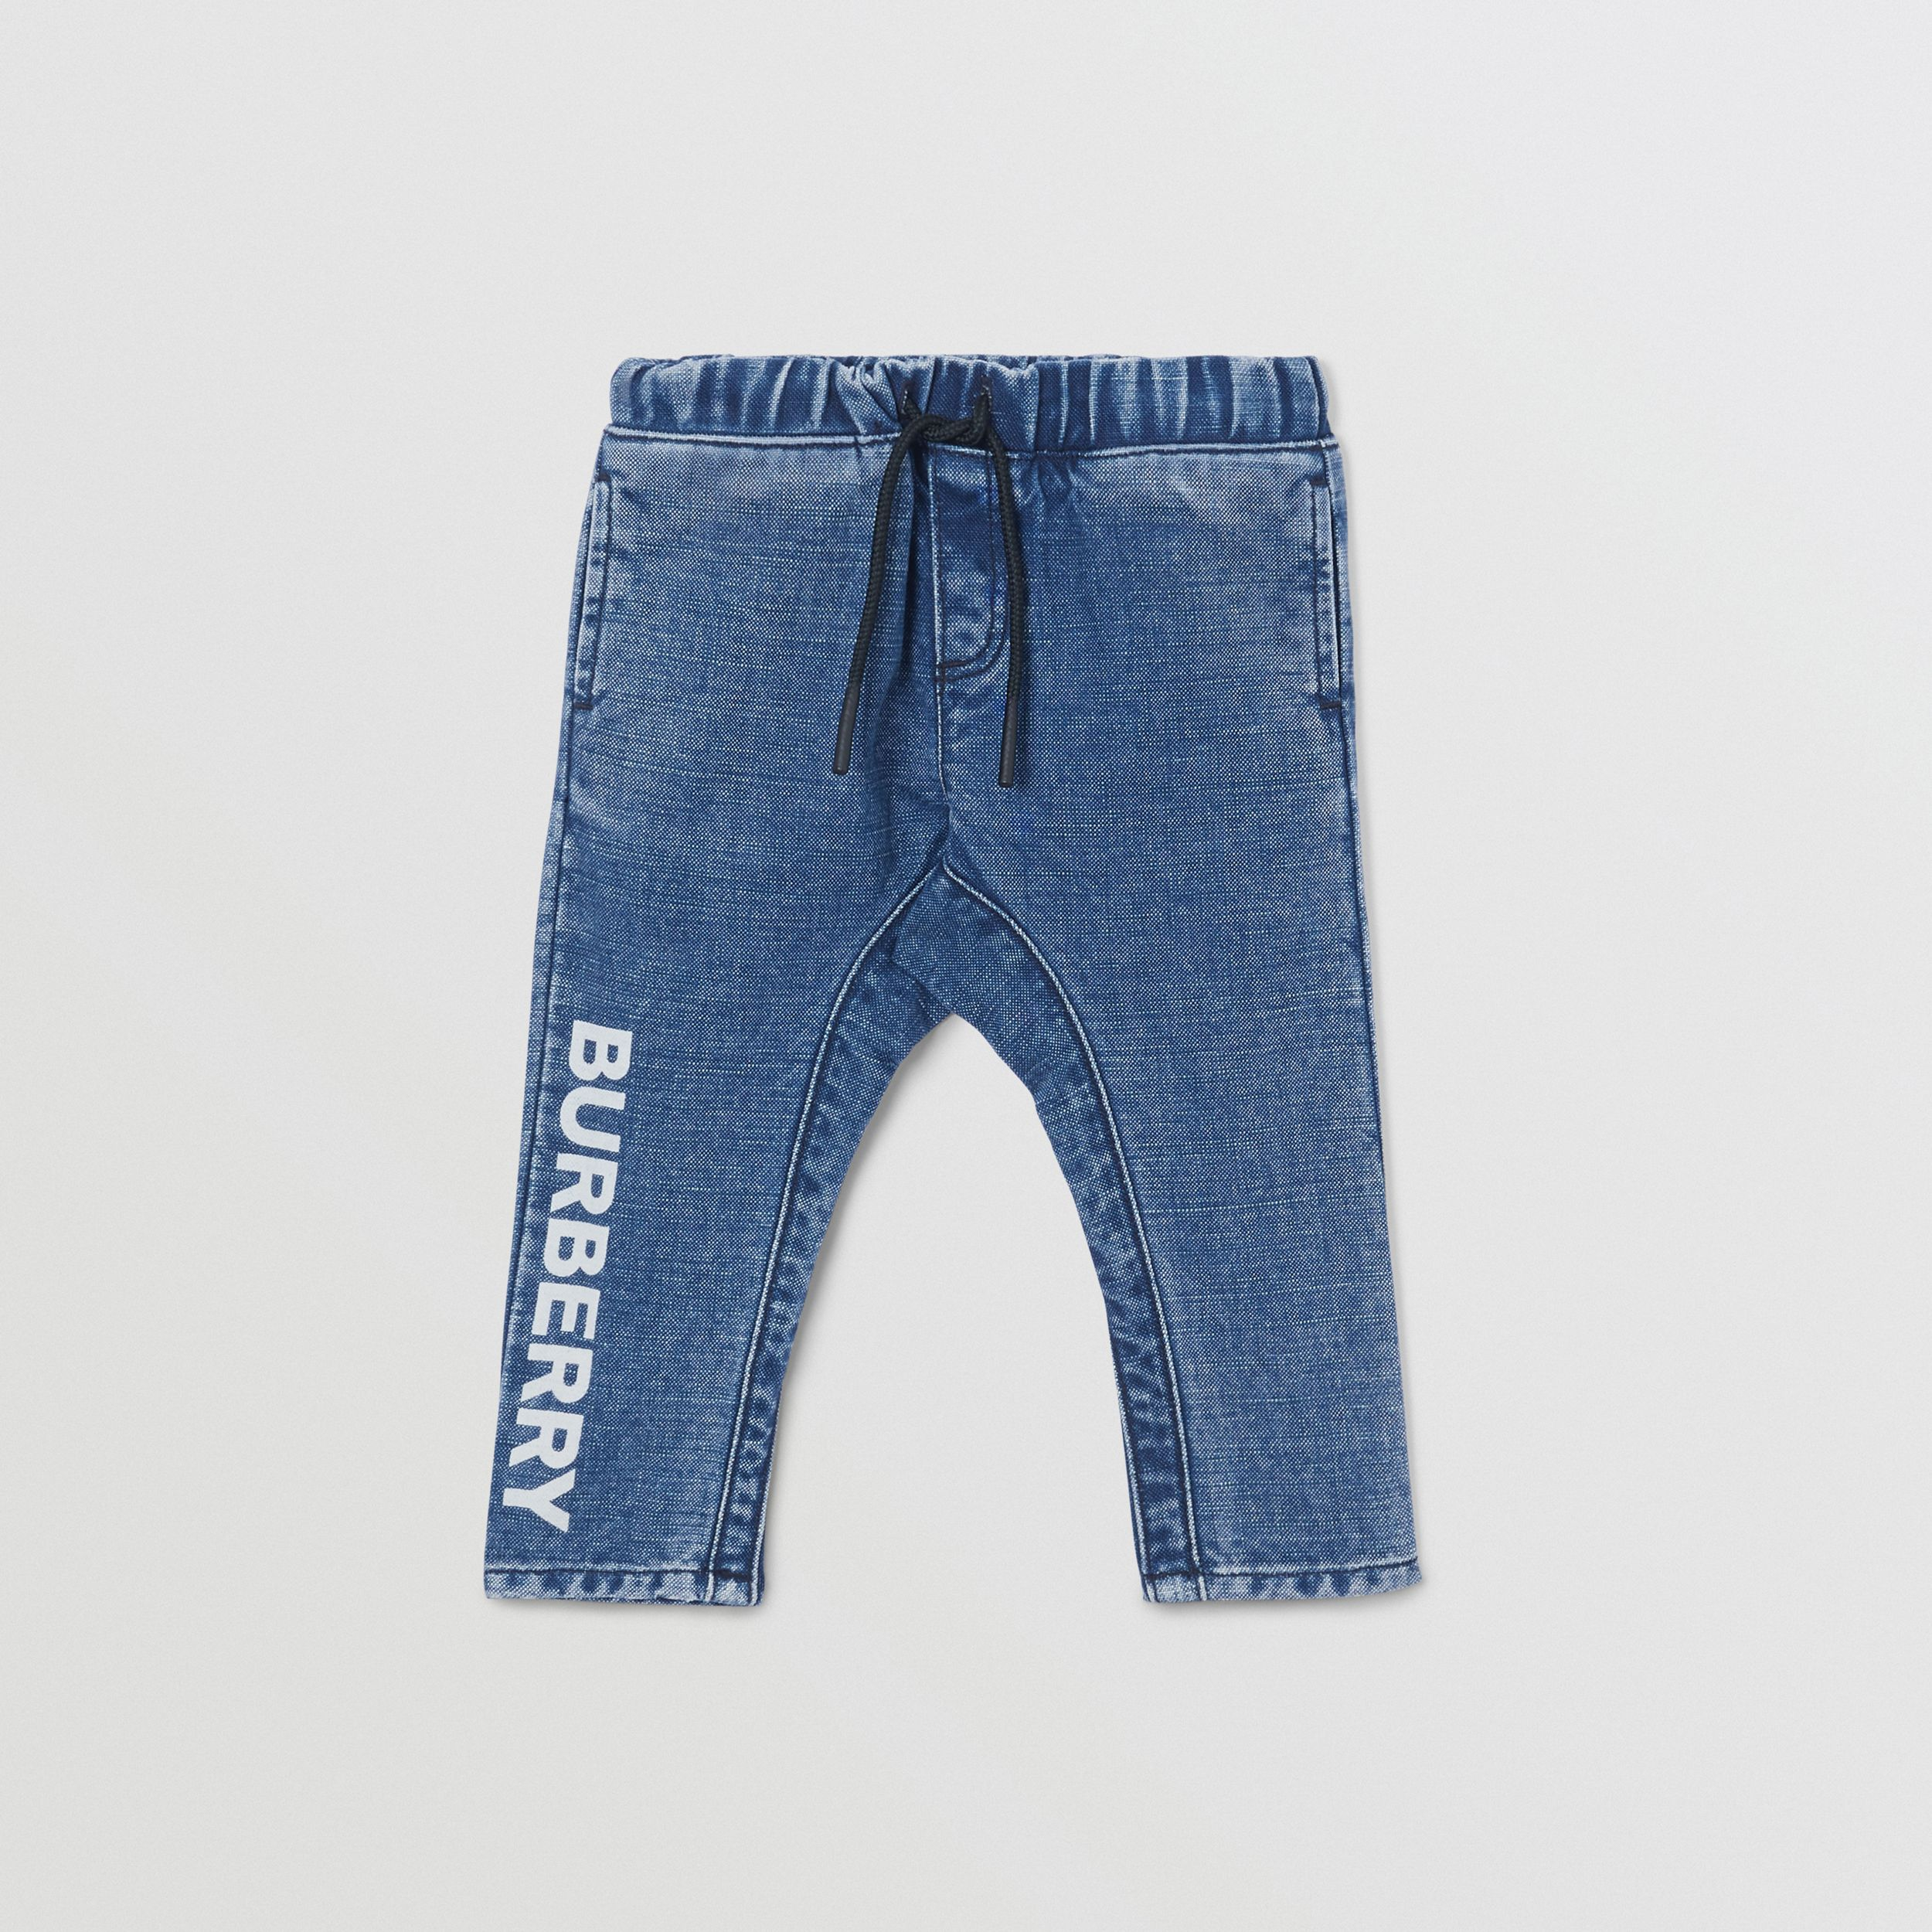 Logo Print Japanese Denim Jeans in Indigo - Children | Burberry - 1